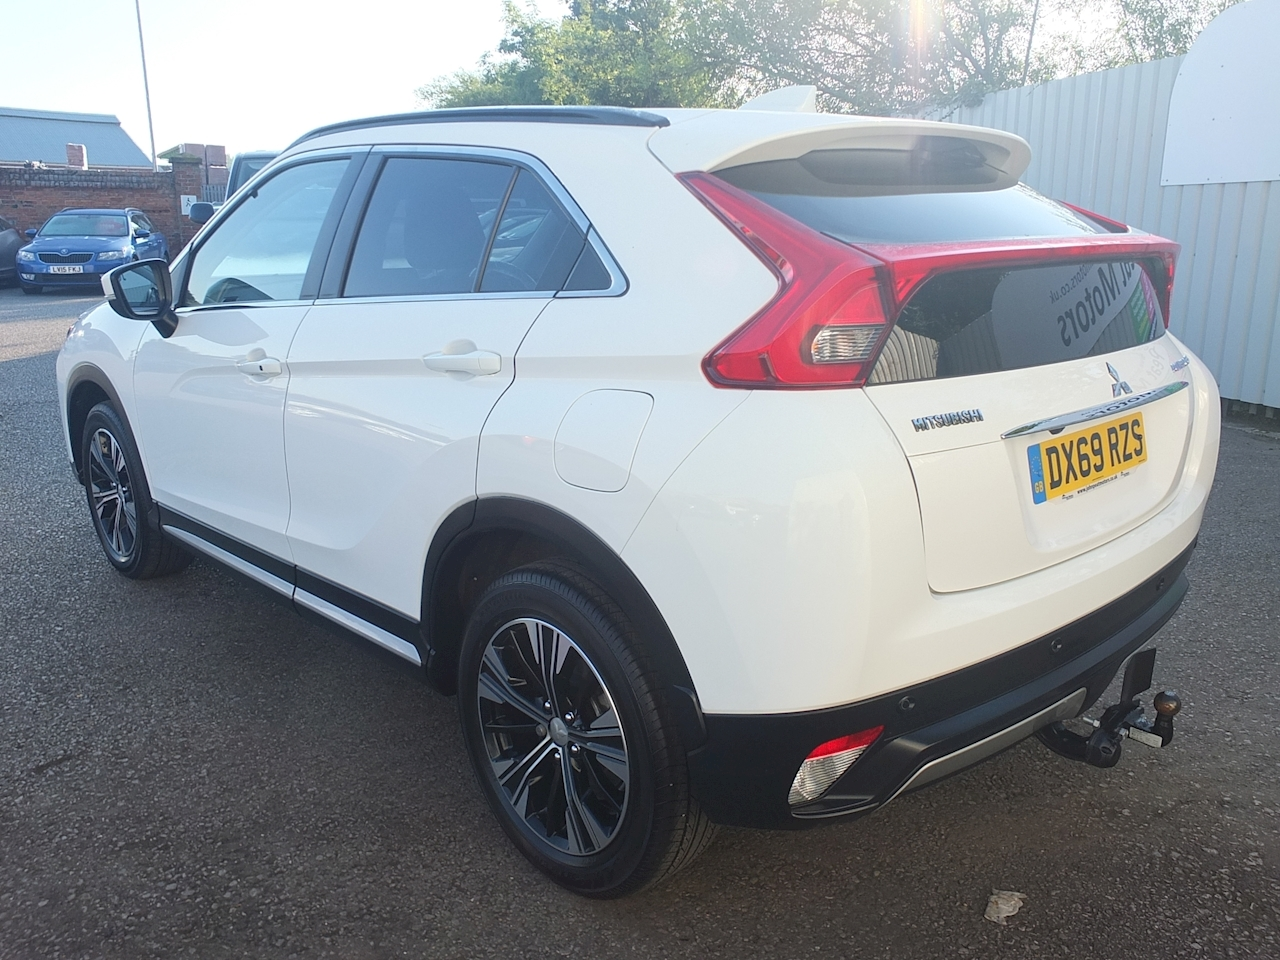 Eclipse Cross 3 SUV 1.5 Manual Petrol